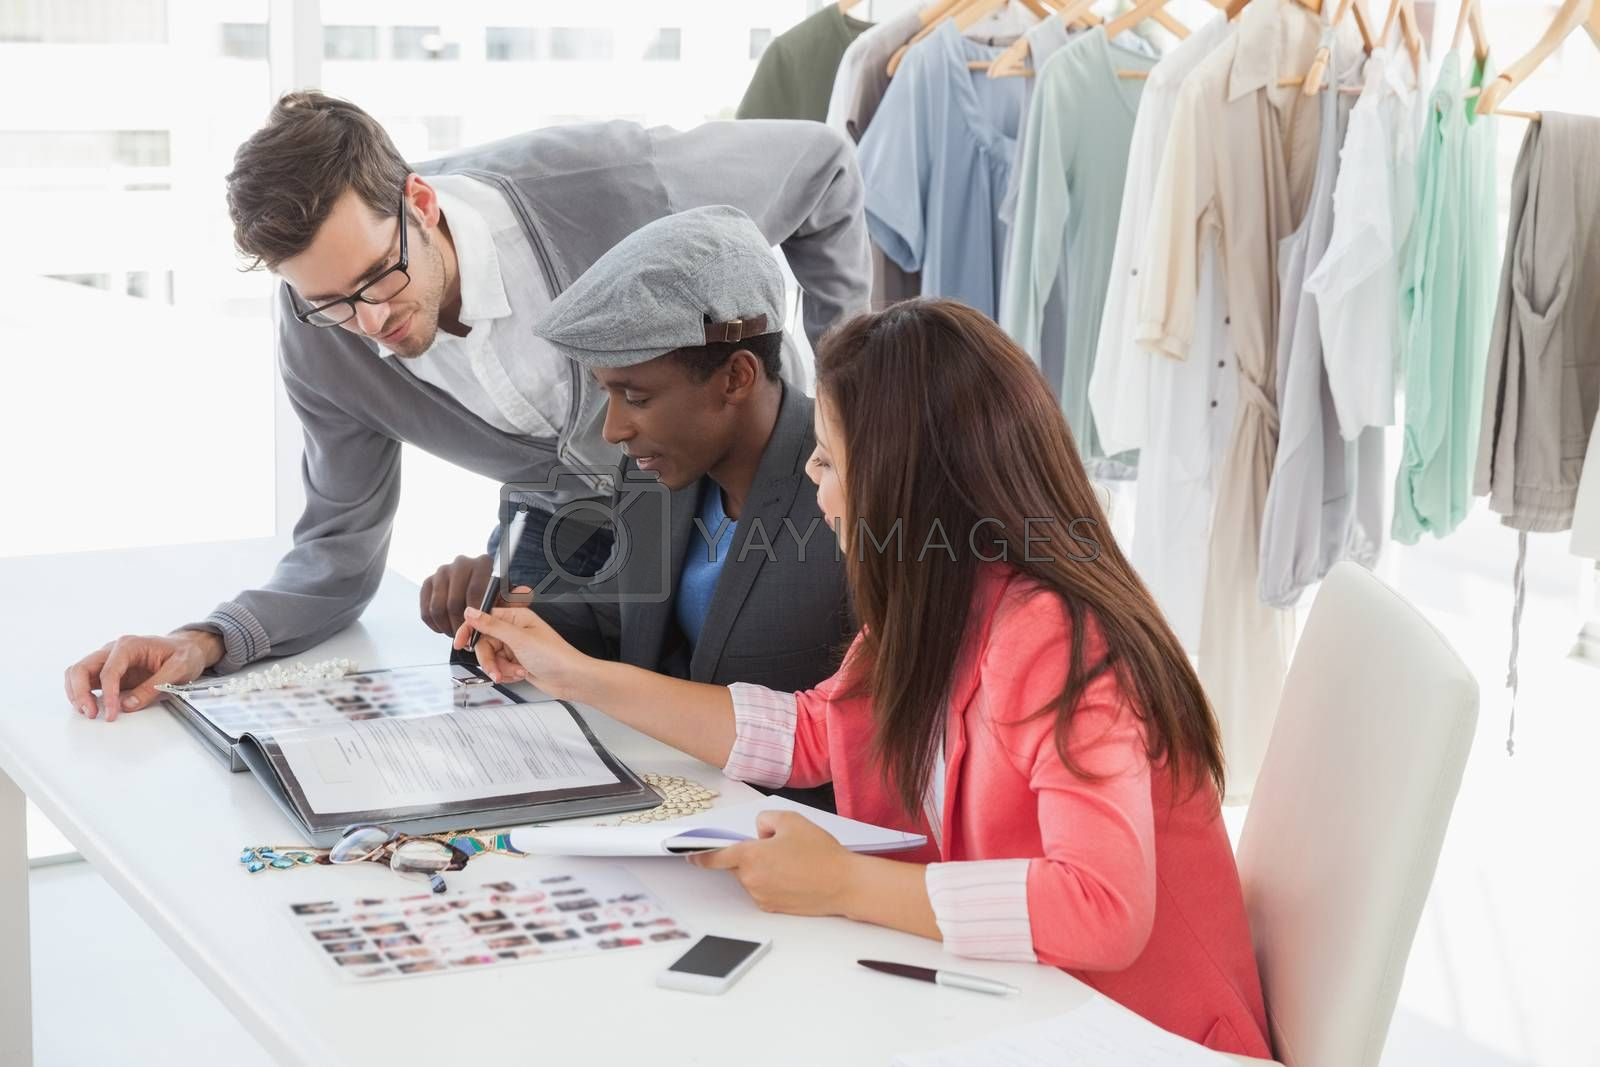 Group of fashion designers discussing designs in a studio